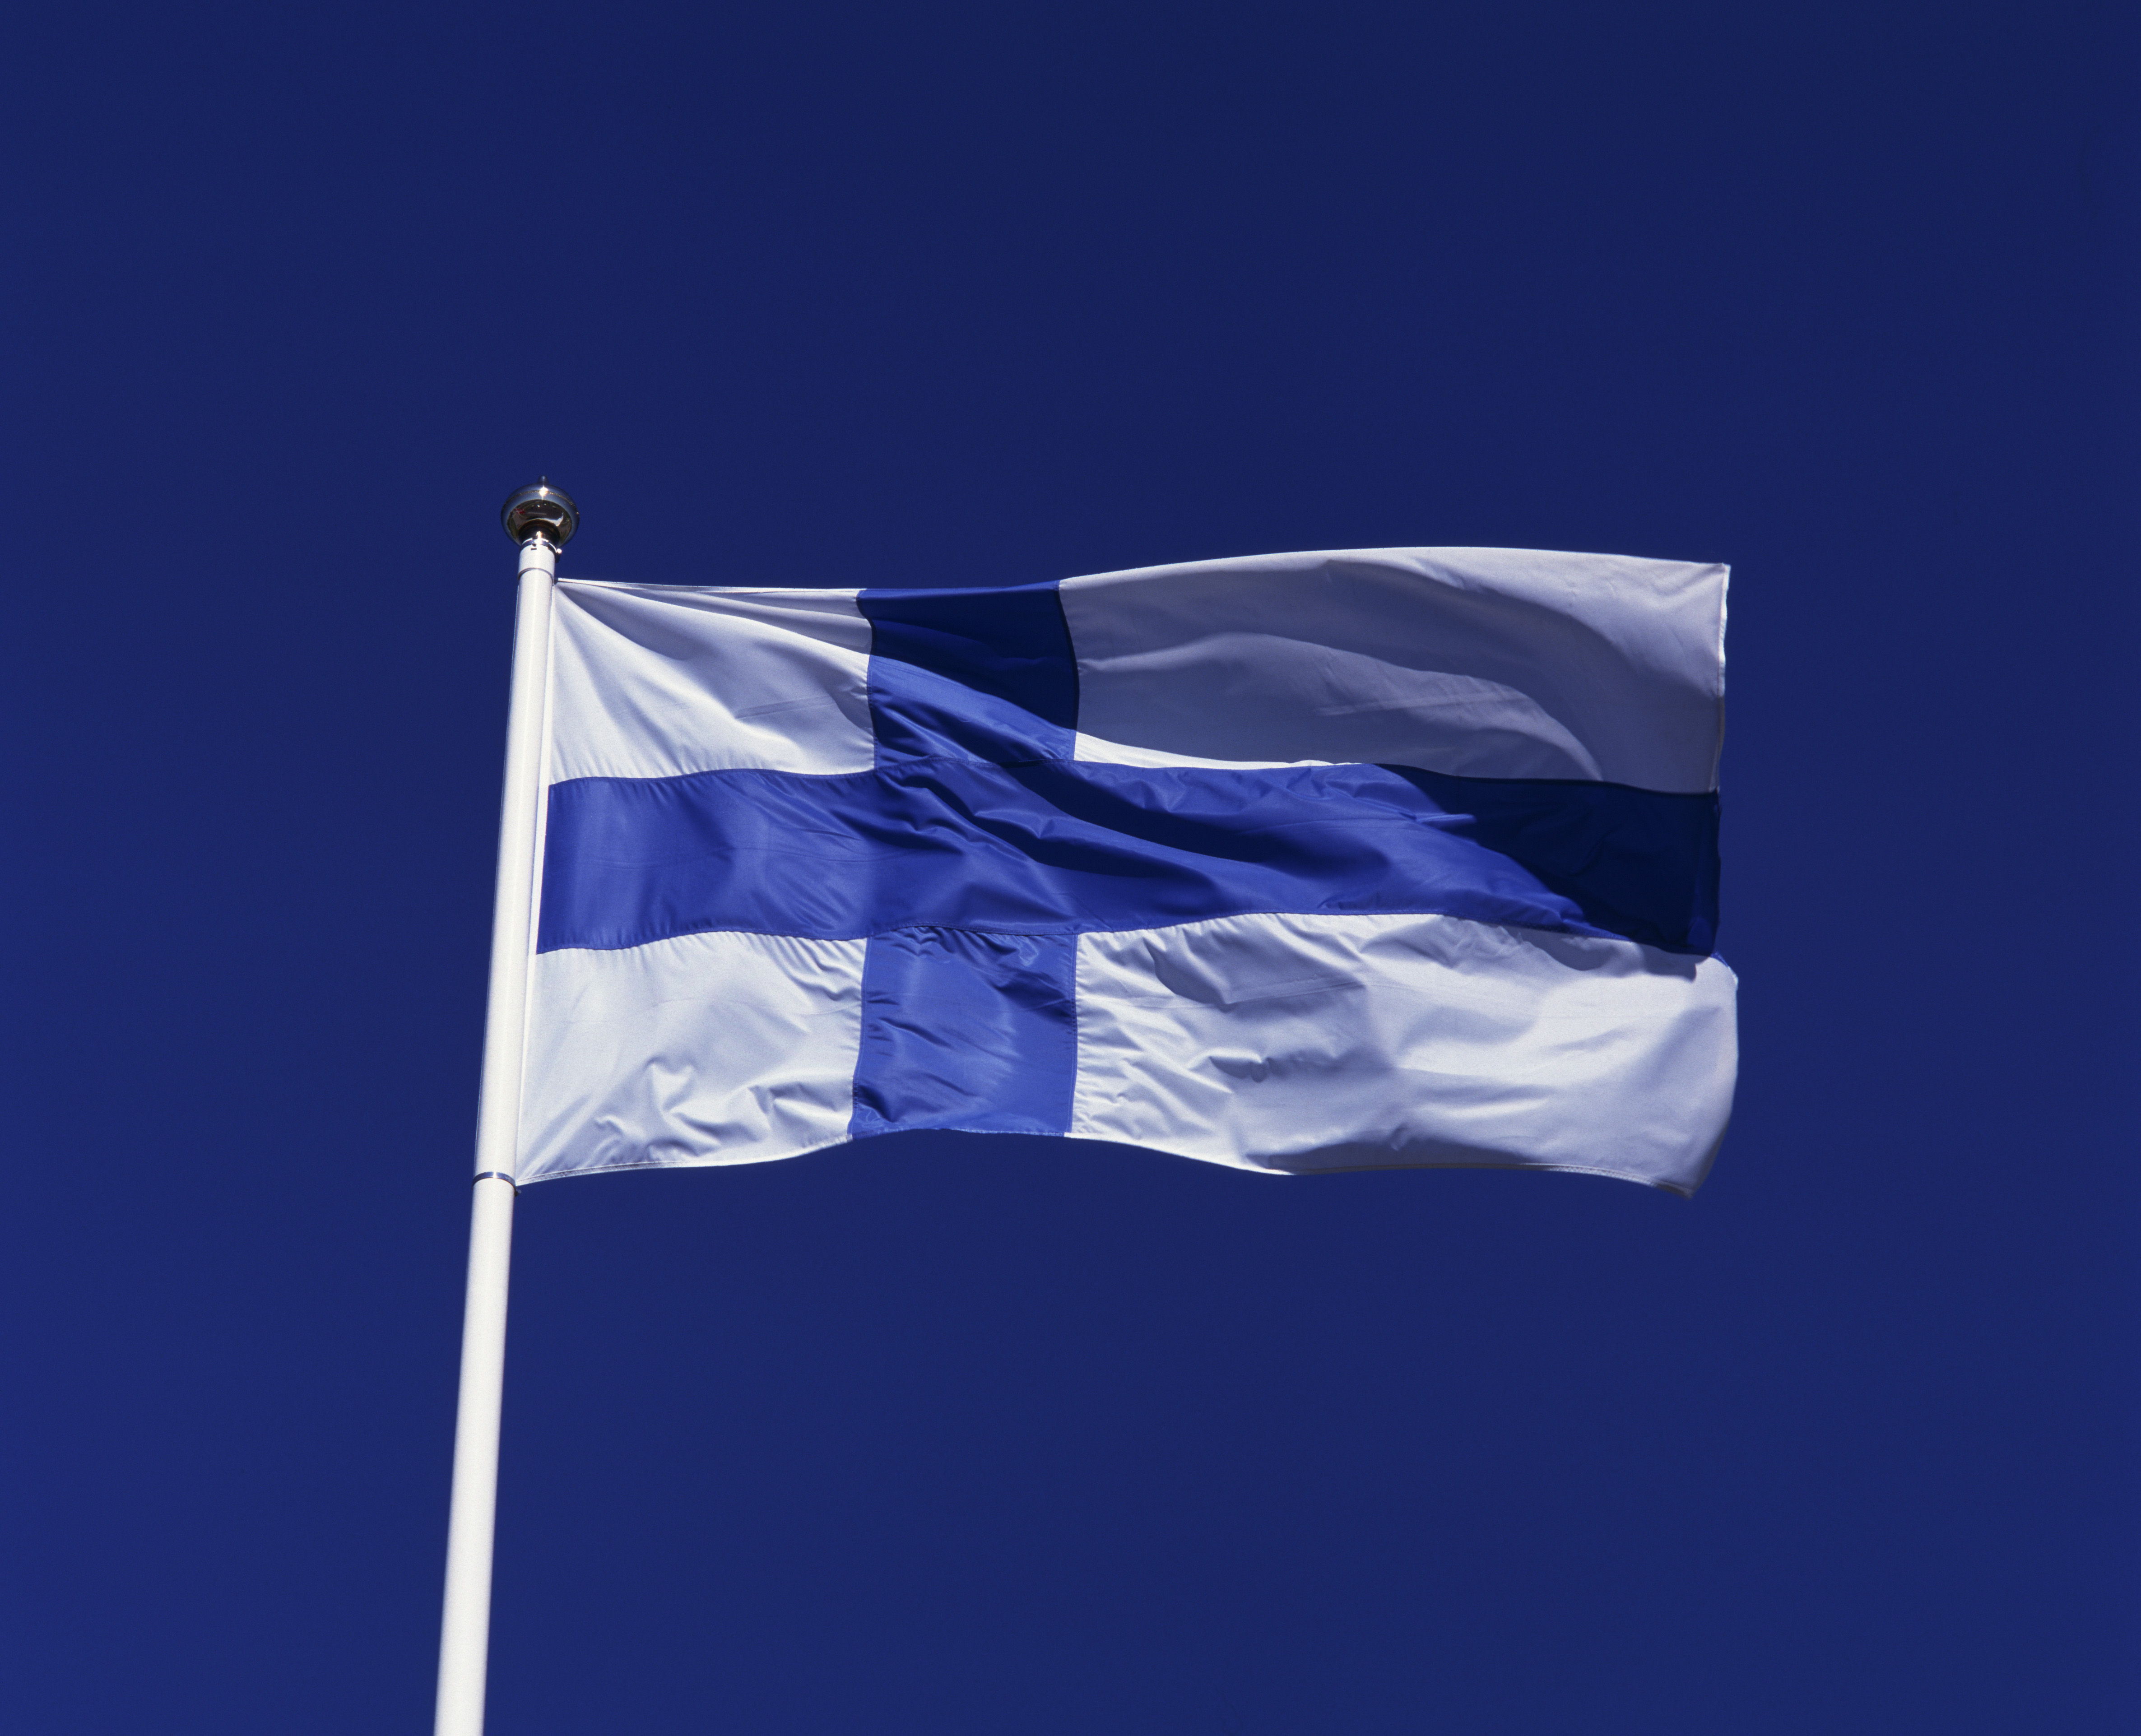 Finland, Flag, Finnish flag flapping in the wind.